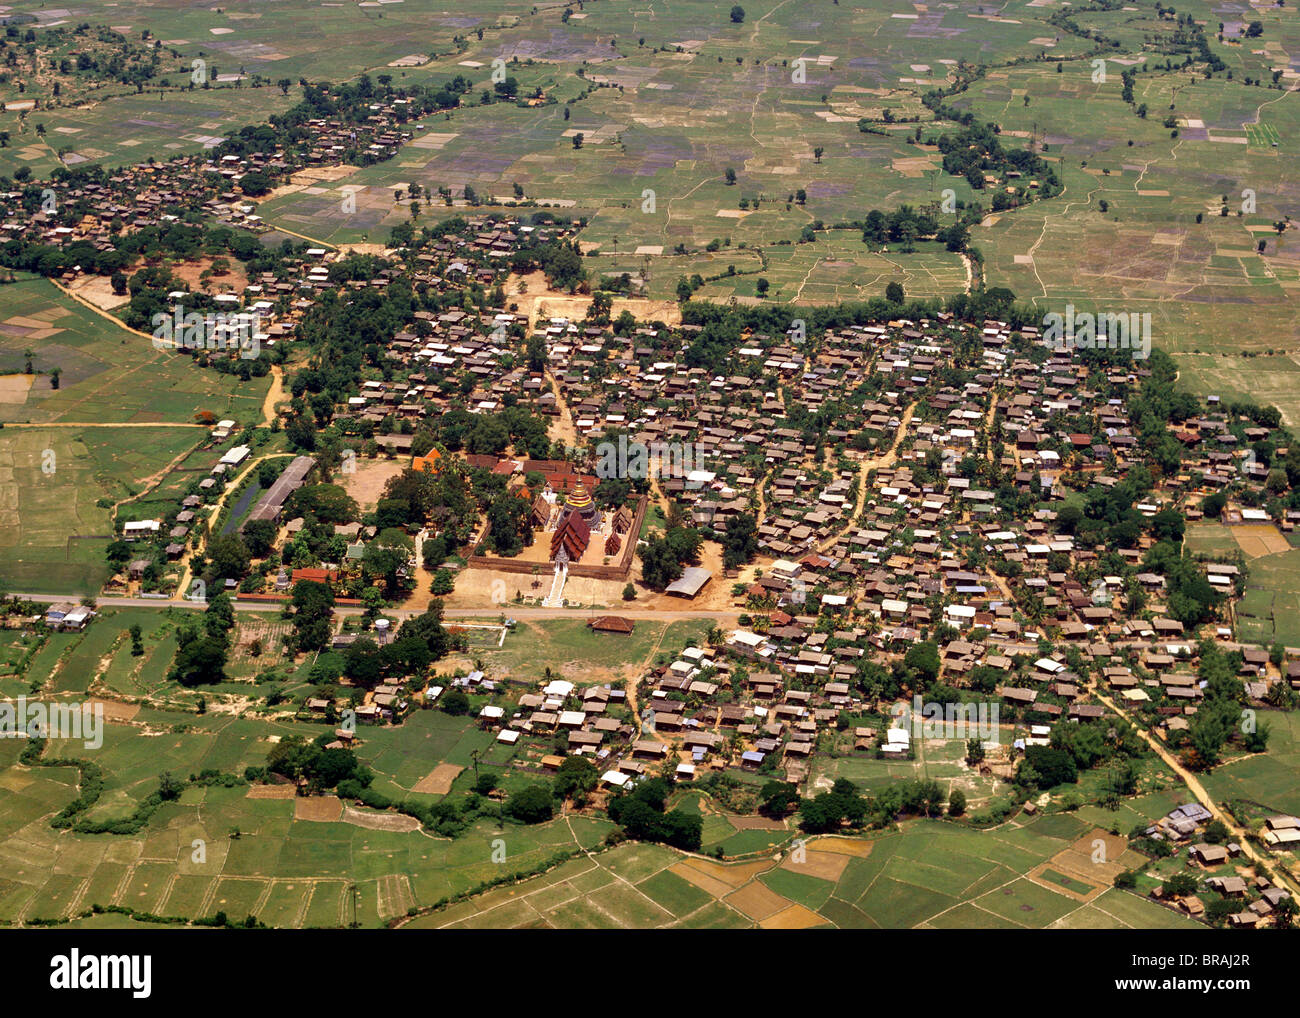 Aerial view of Wat Phra That Luang, Lampang Province, Thailand, Southeast Asia - Stock Image